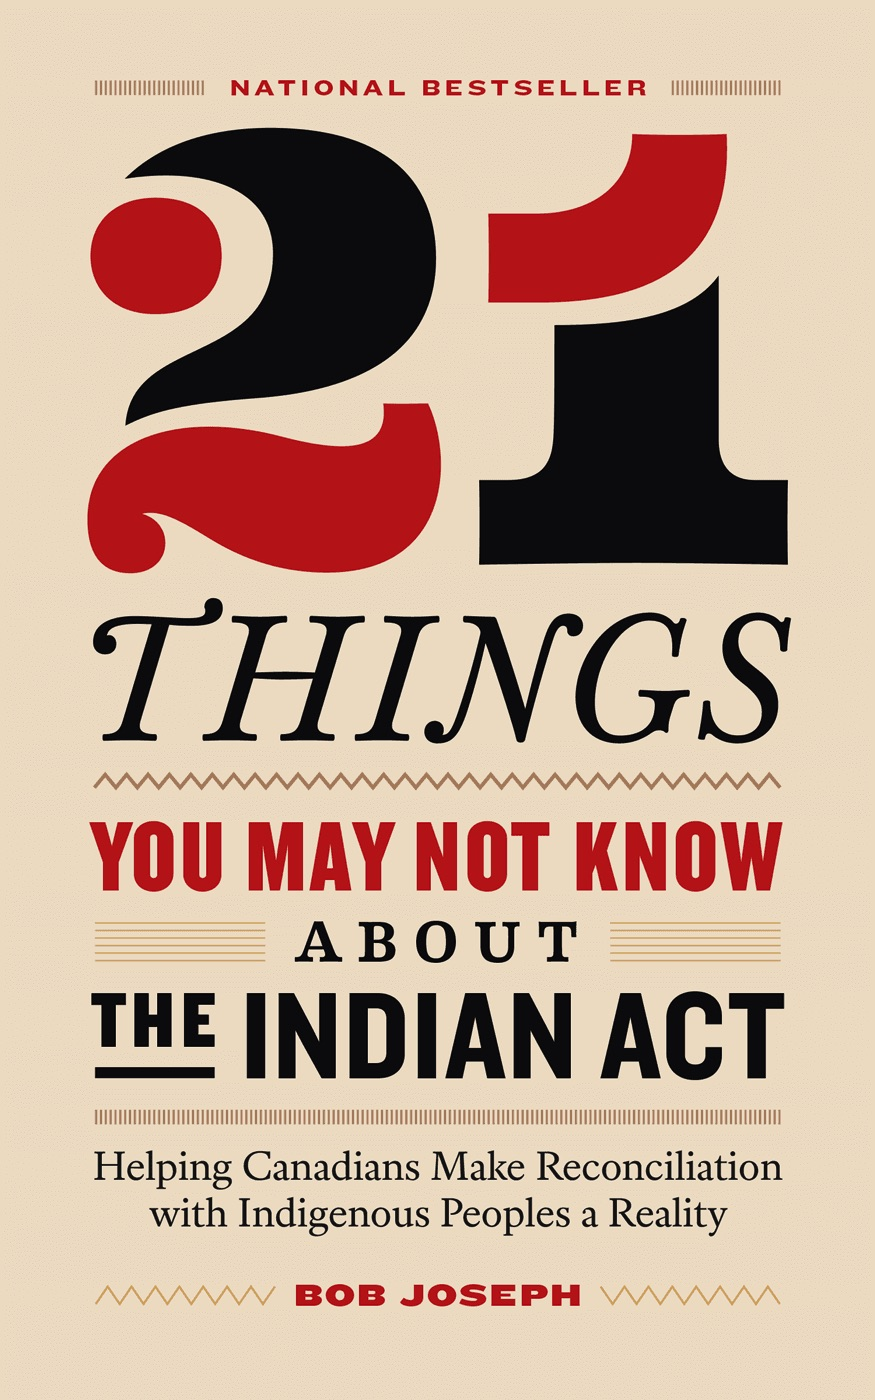 21 things Indian Act